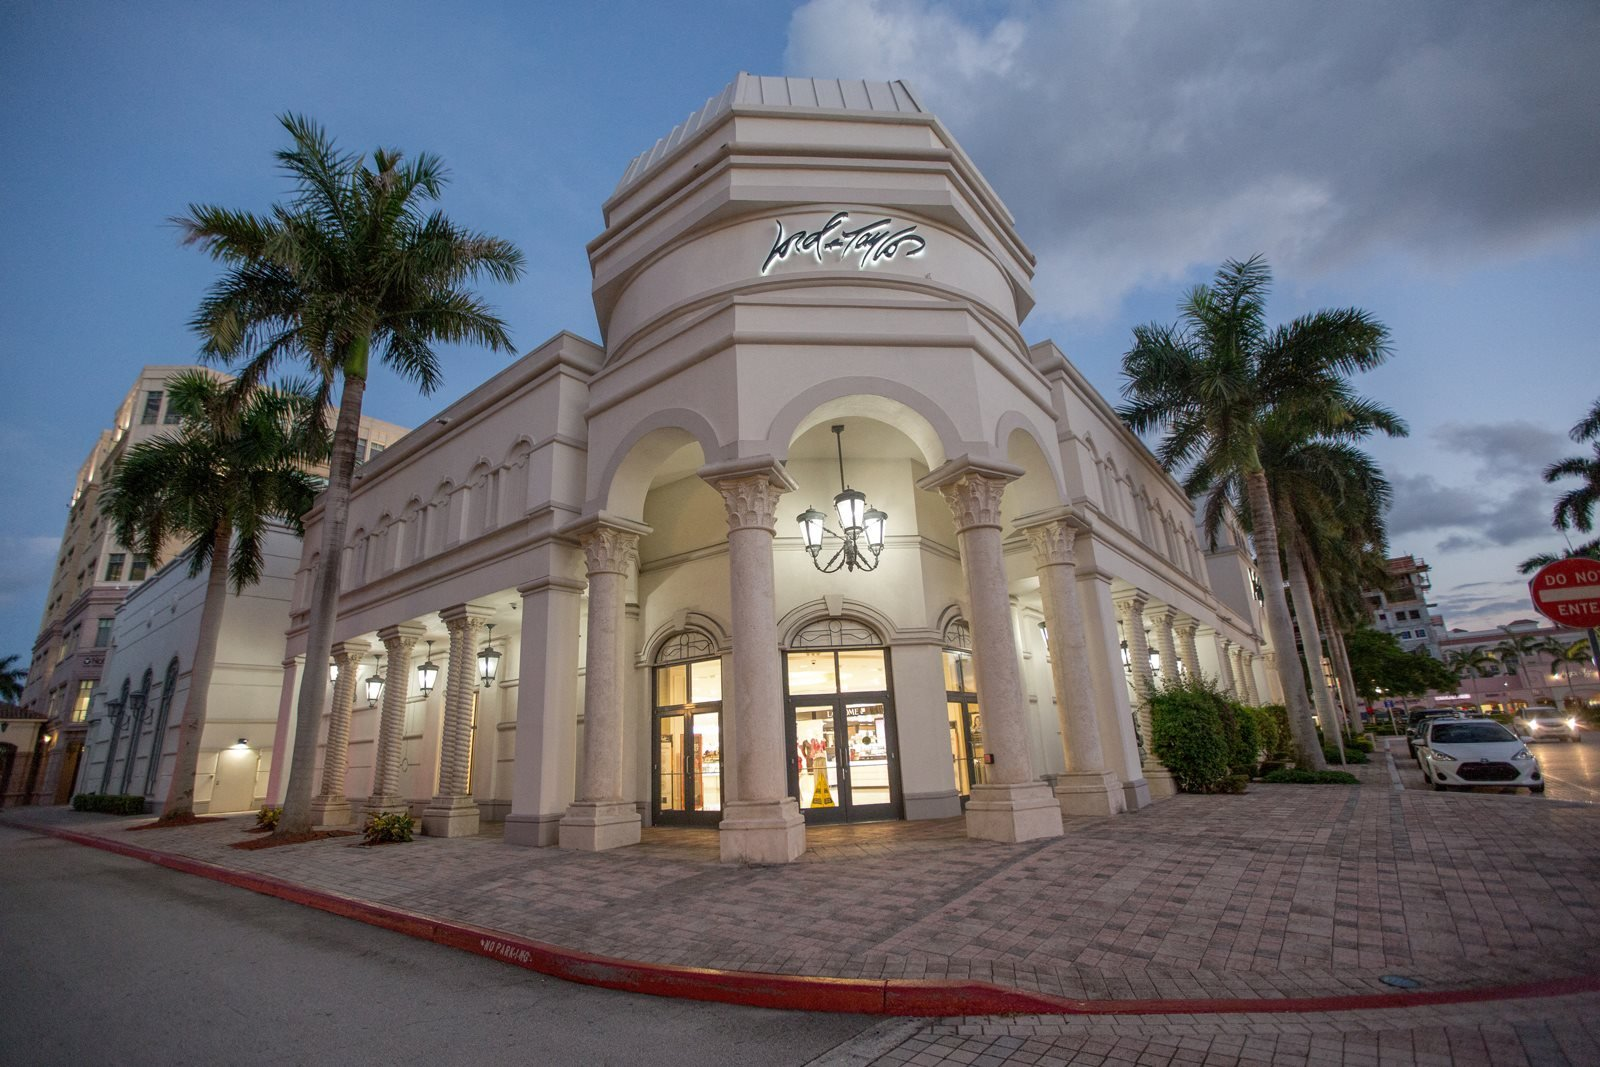 Lord and Taylor at Mizner Park at Allure by Windsor, Boca Raton, Florida